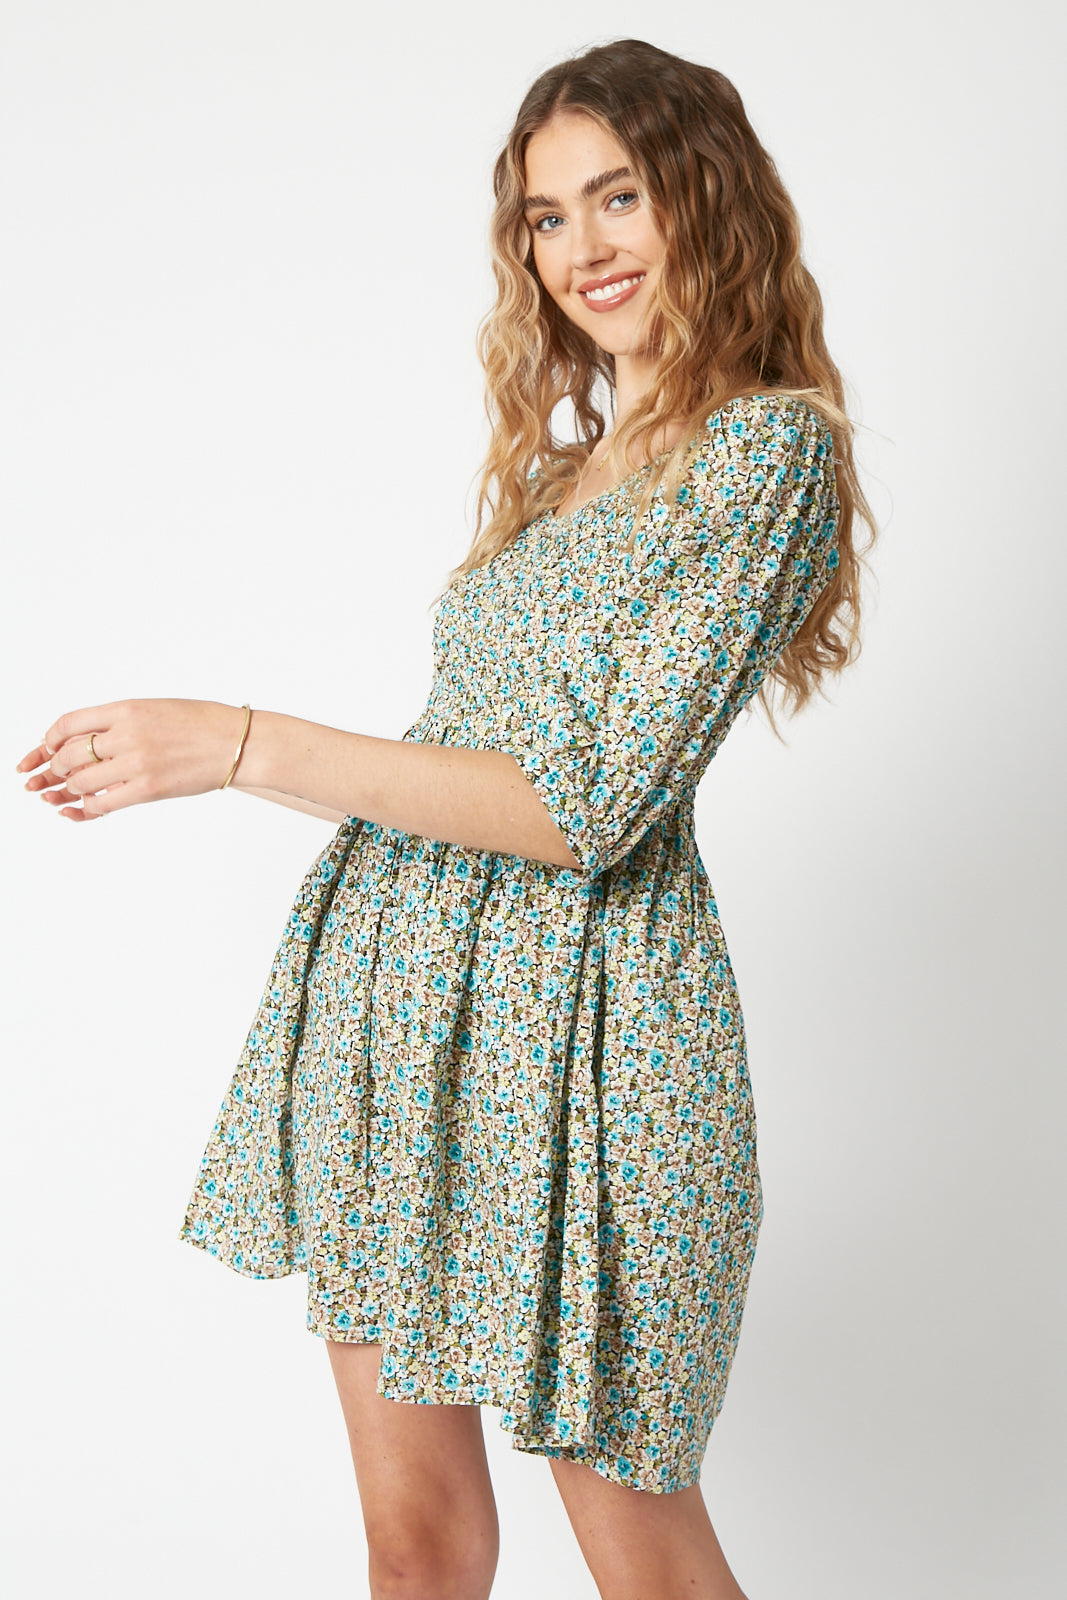 Mitzy Dress